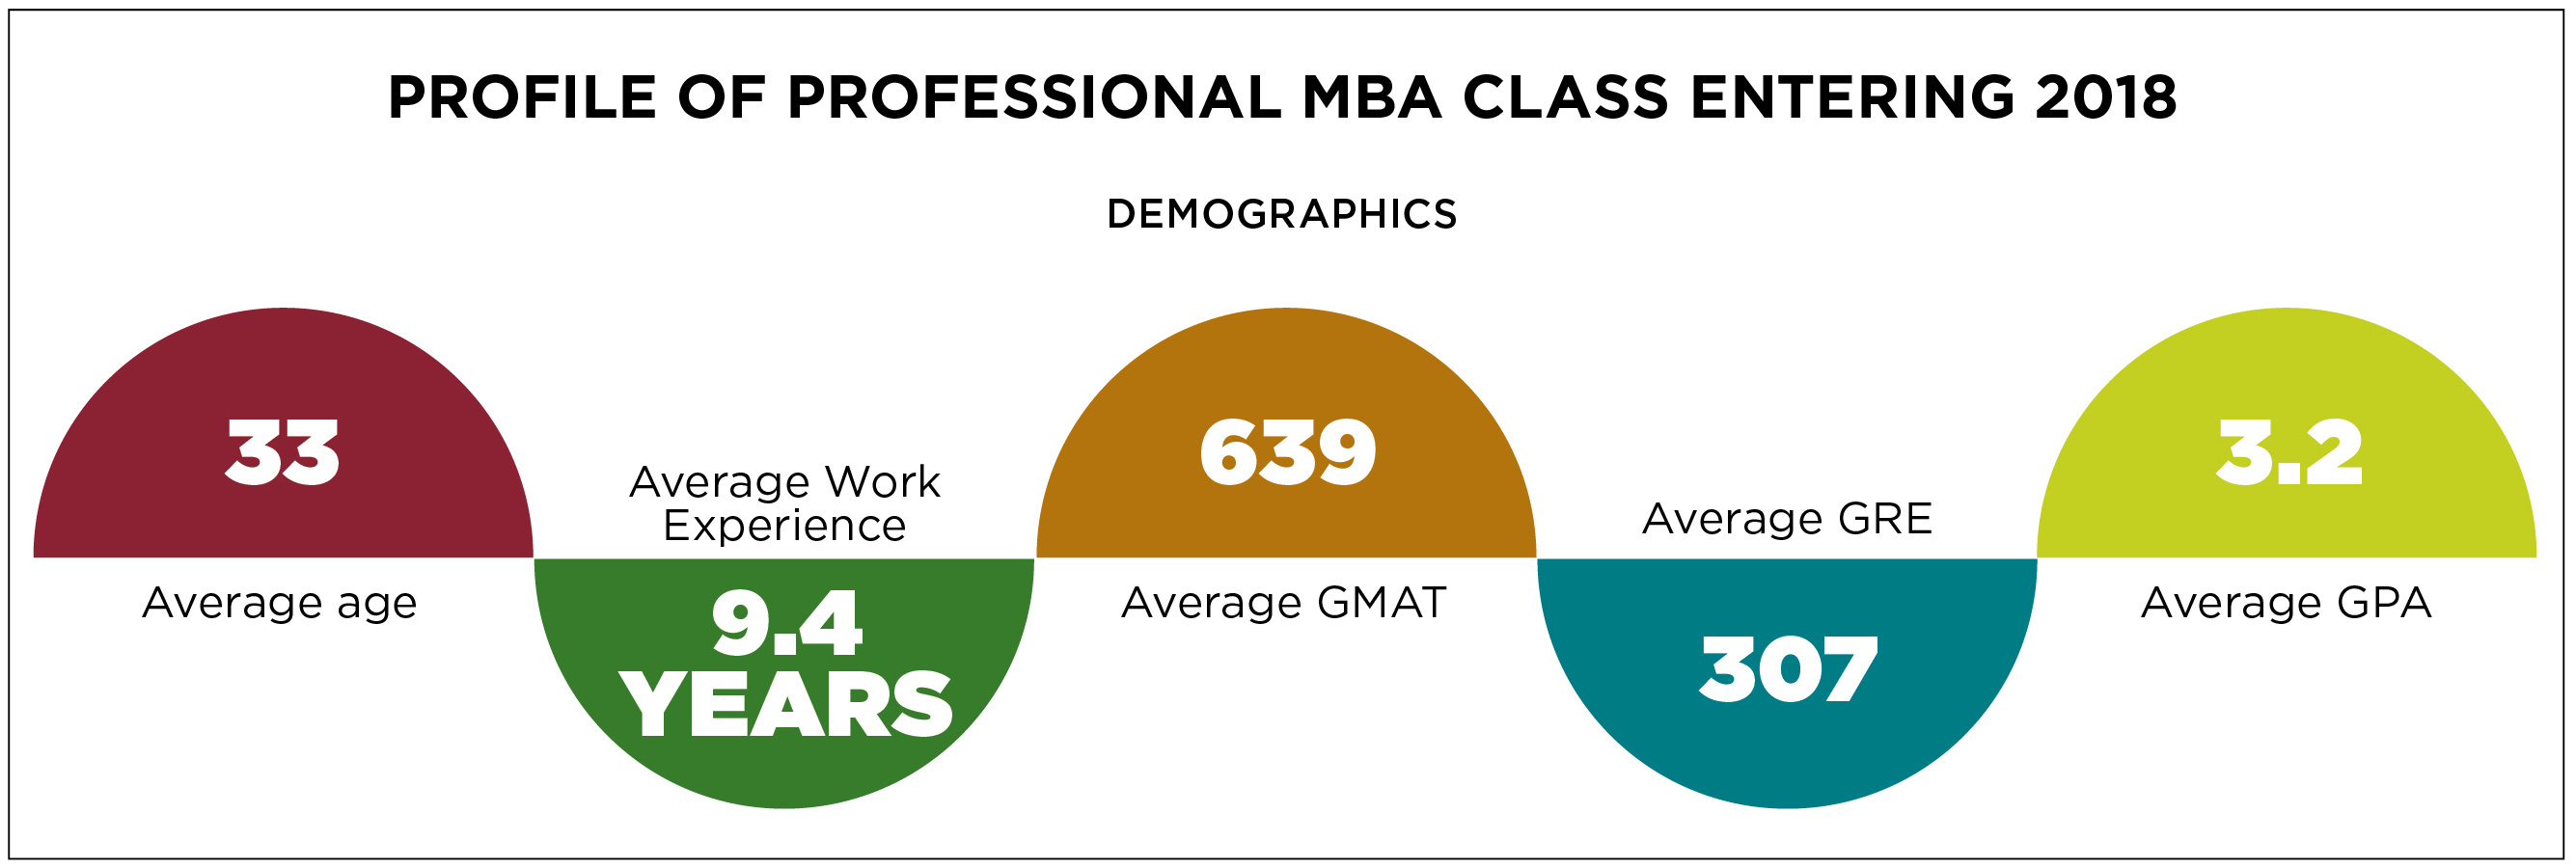 Profile of Professional MBA 2018 Entering Class. Average age is 33 years. Average work experience is 9.4 years. Average GMAT score is 639. Average GRE score is 307. Average undergraduate GPA is 3.2